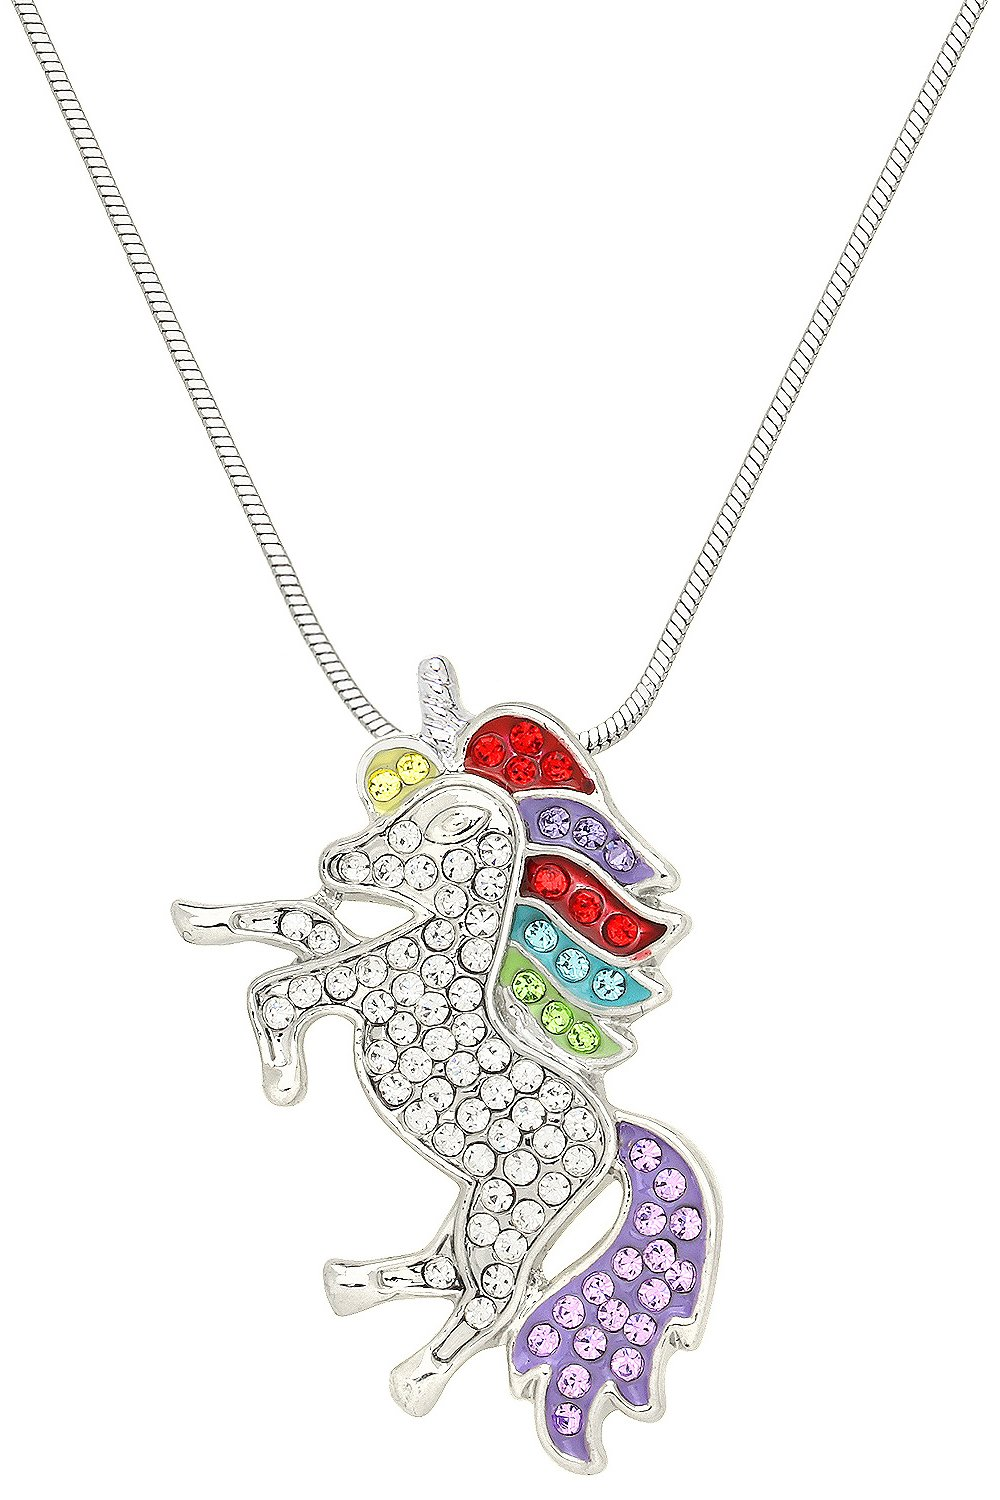 Falari Unicorn Pendant Necklace Rhinestone Crystal Rhodium High Polished J0132